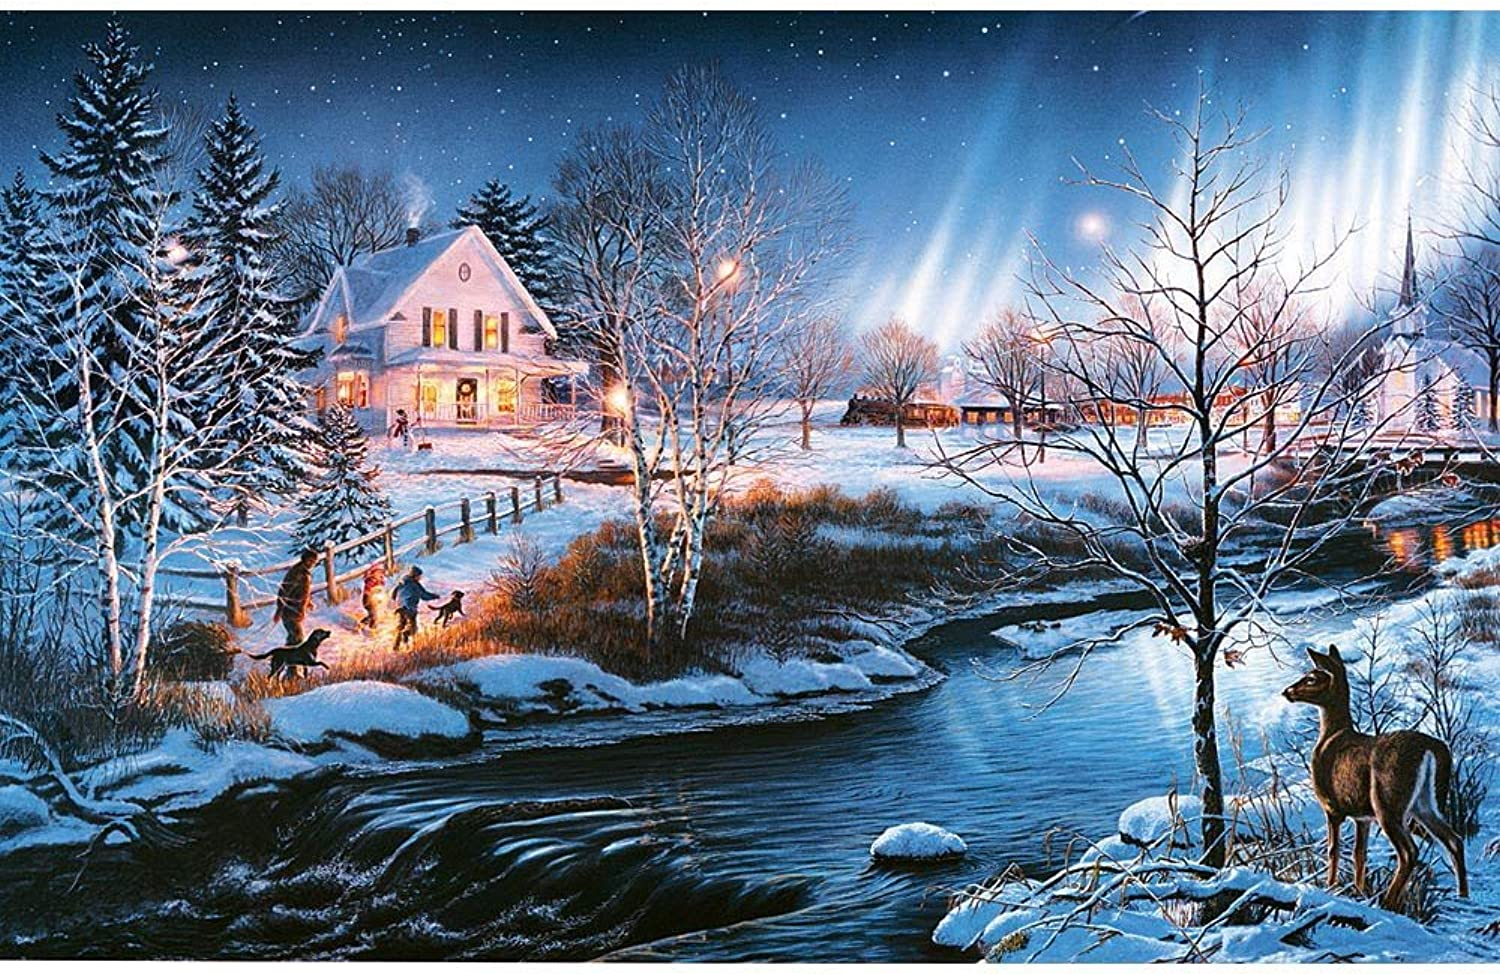 Bits and Pieces  300 Large Piece Glow in The Dark Puzzle for Adults  All is Bright by Artist James Meger  Winter Holiday Landscape  300 pc Jigsaw